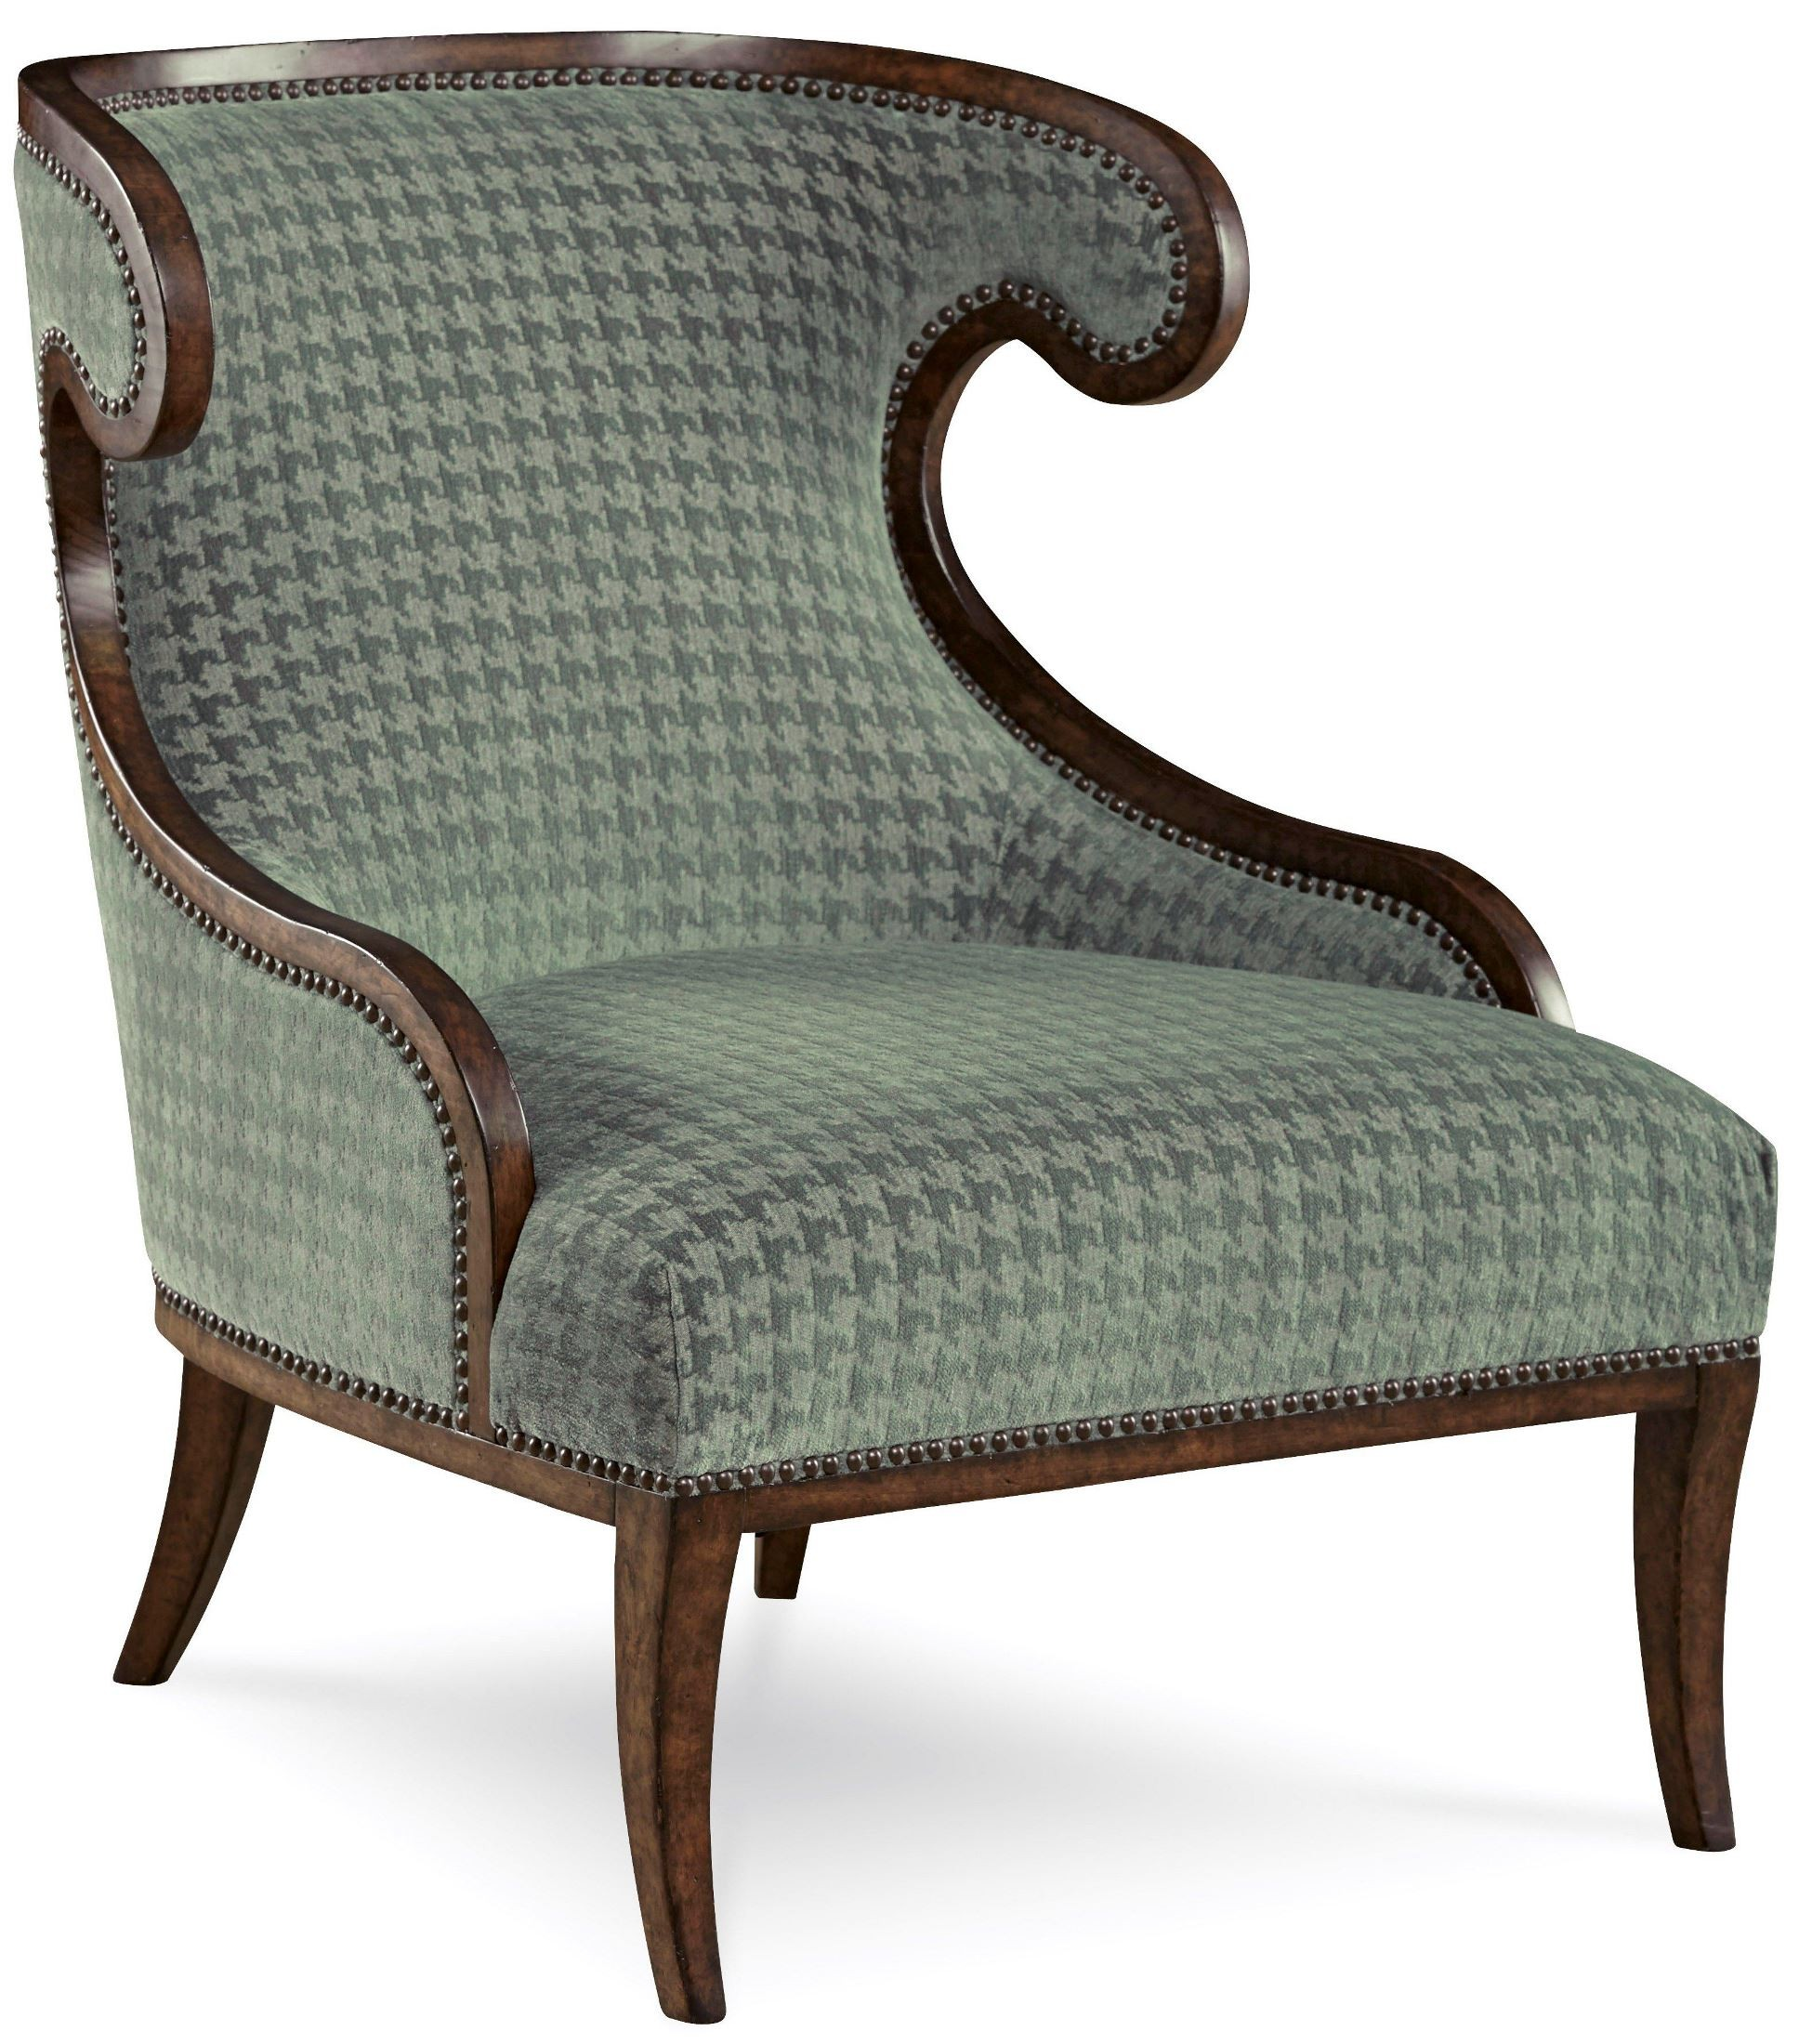 Palazzo Misty Teal Upholstered Accent Chair 519534 5001aa